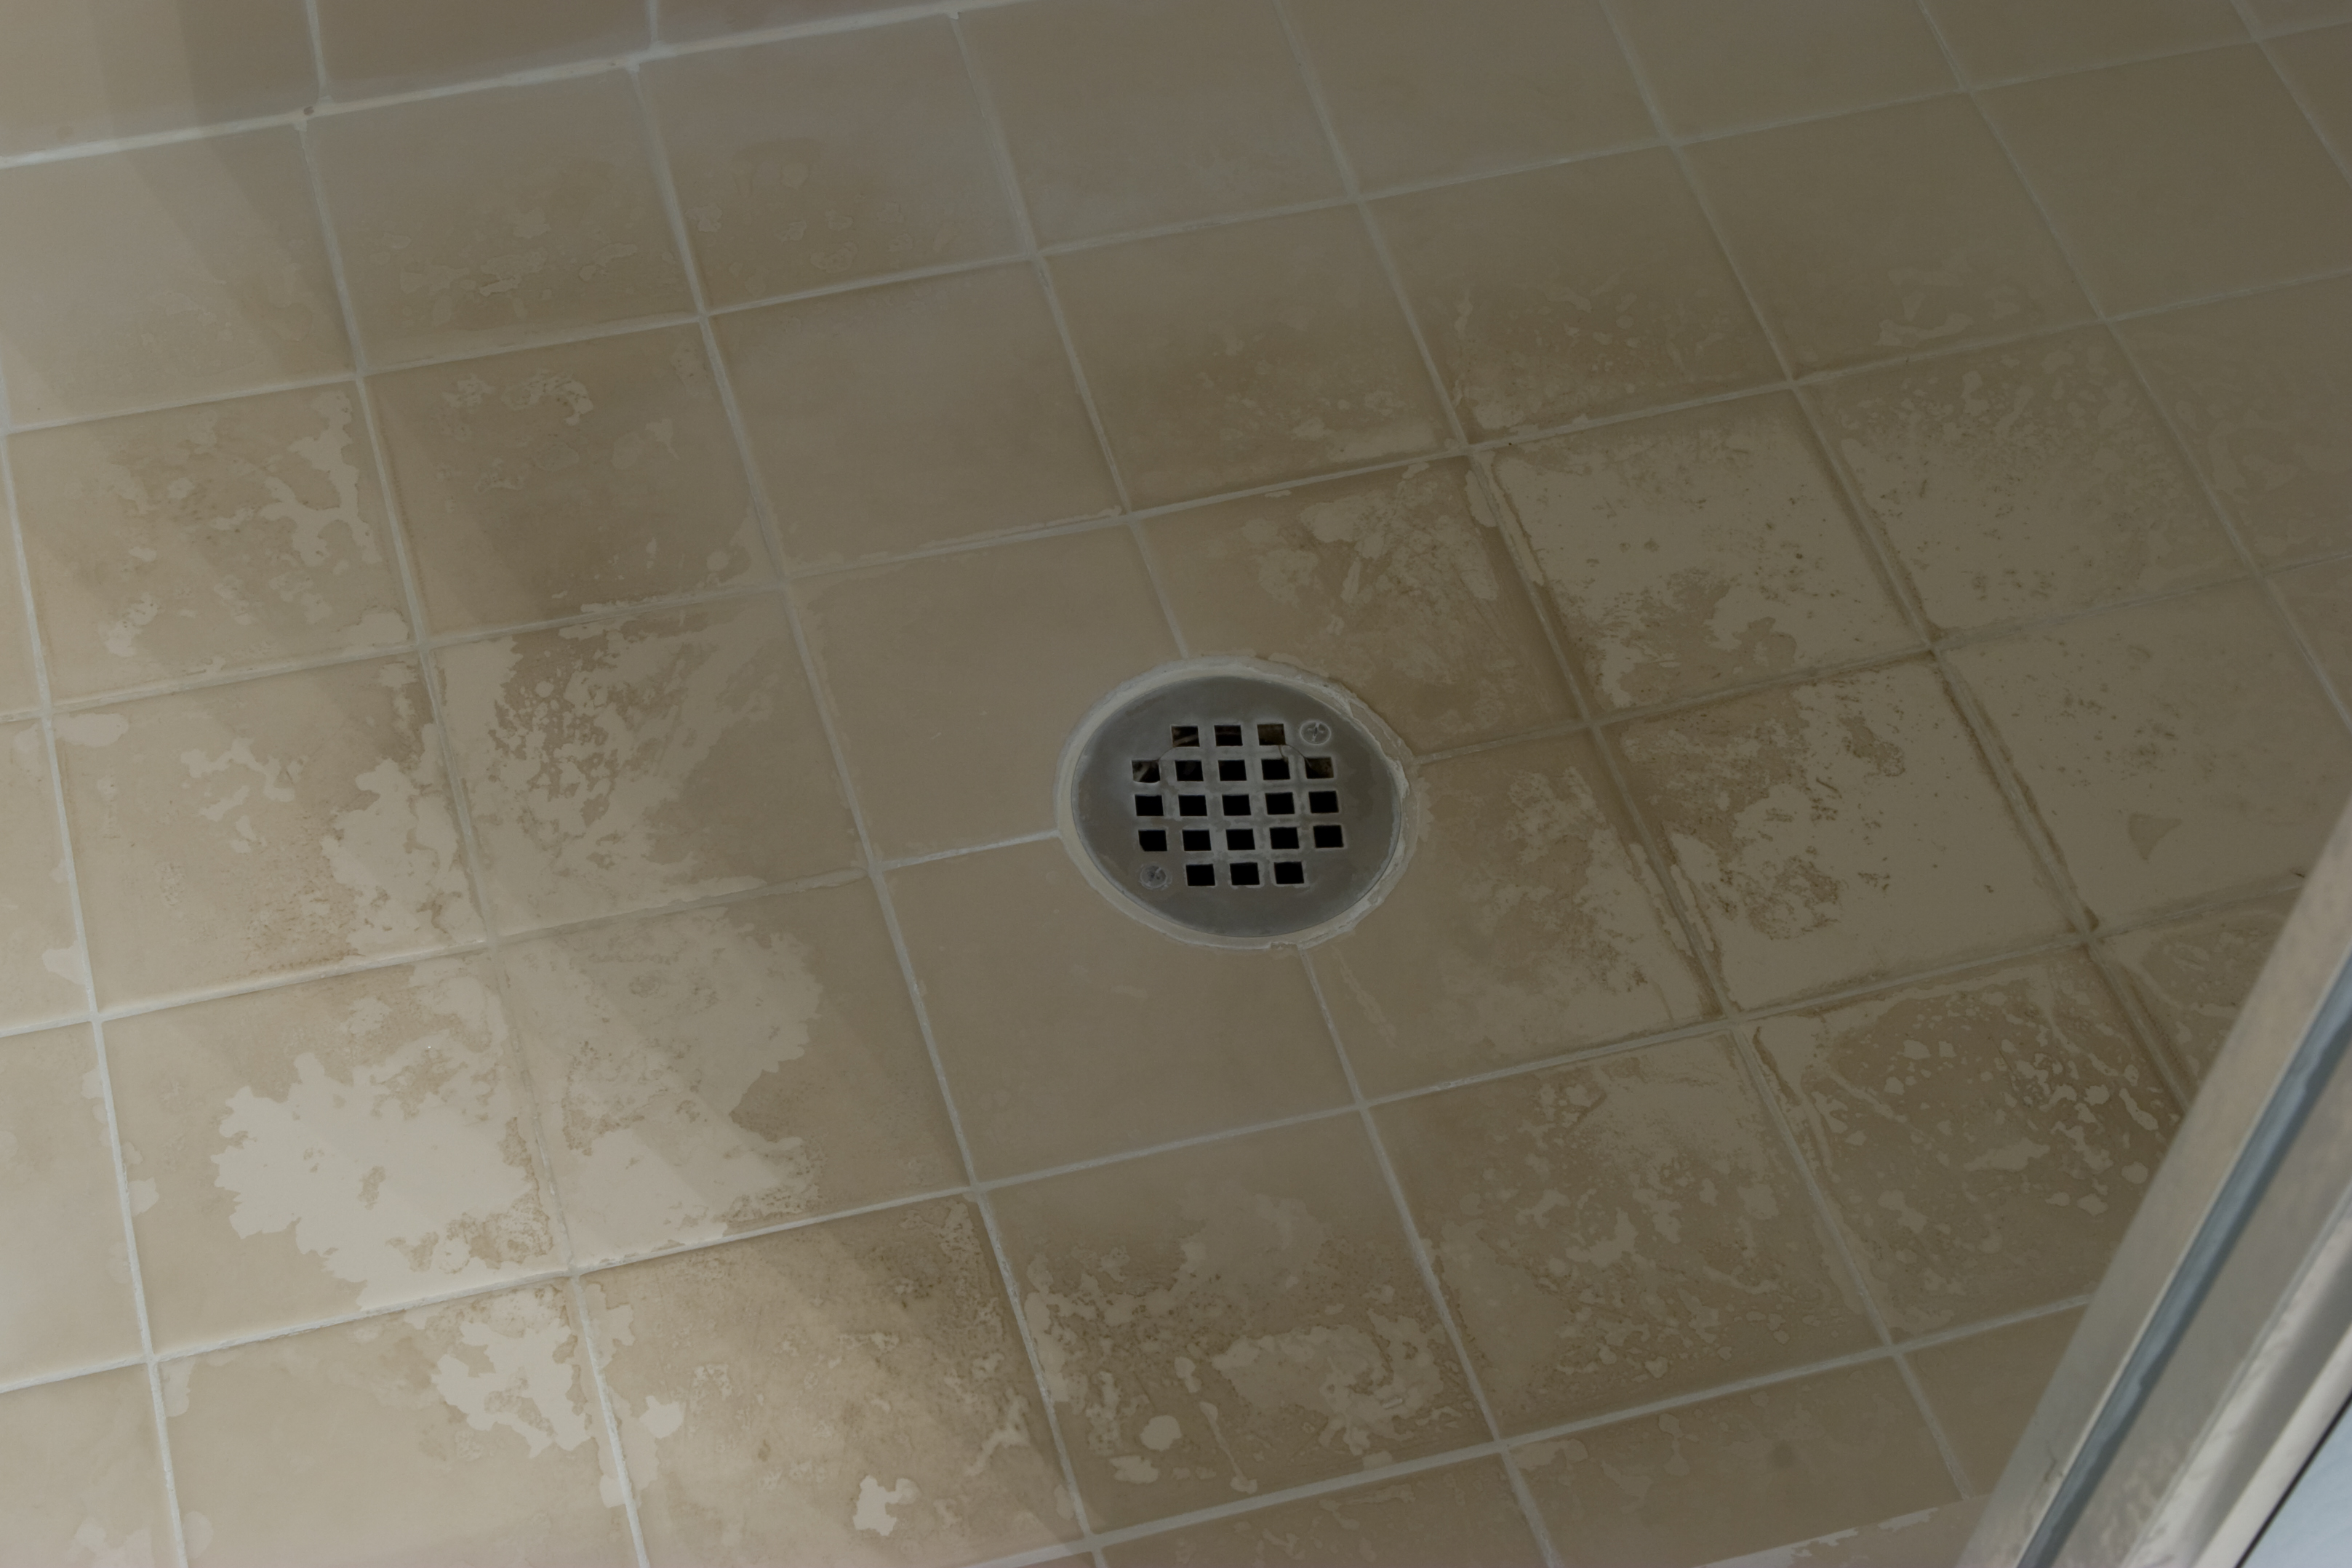 Soap scum on the floor of my shower after many months of for Soap scum on shower floor